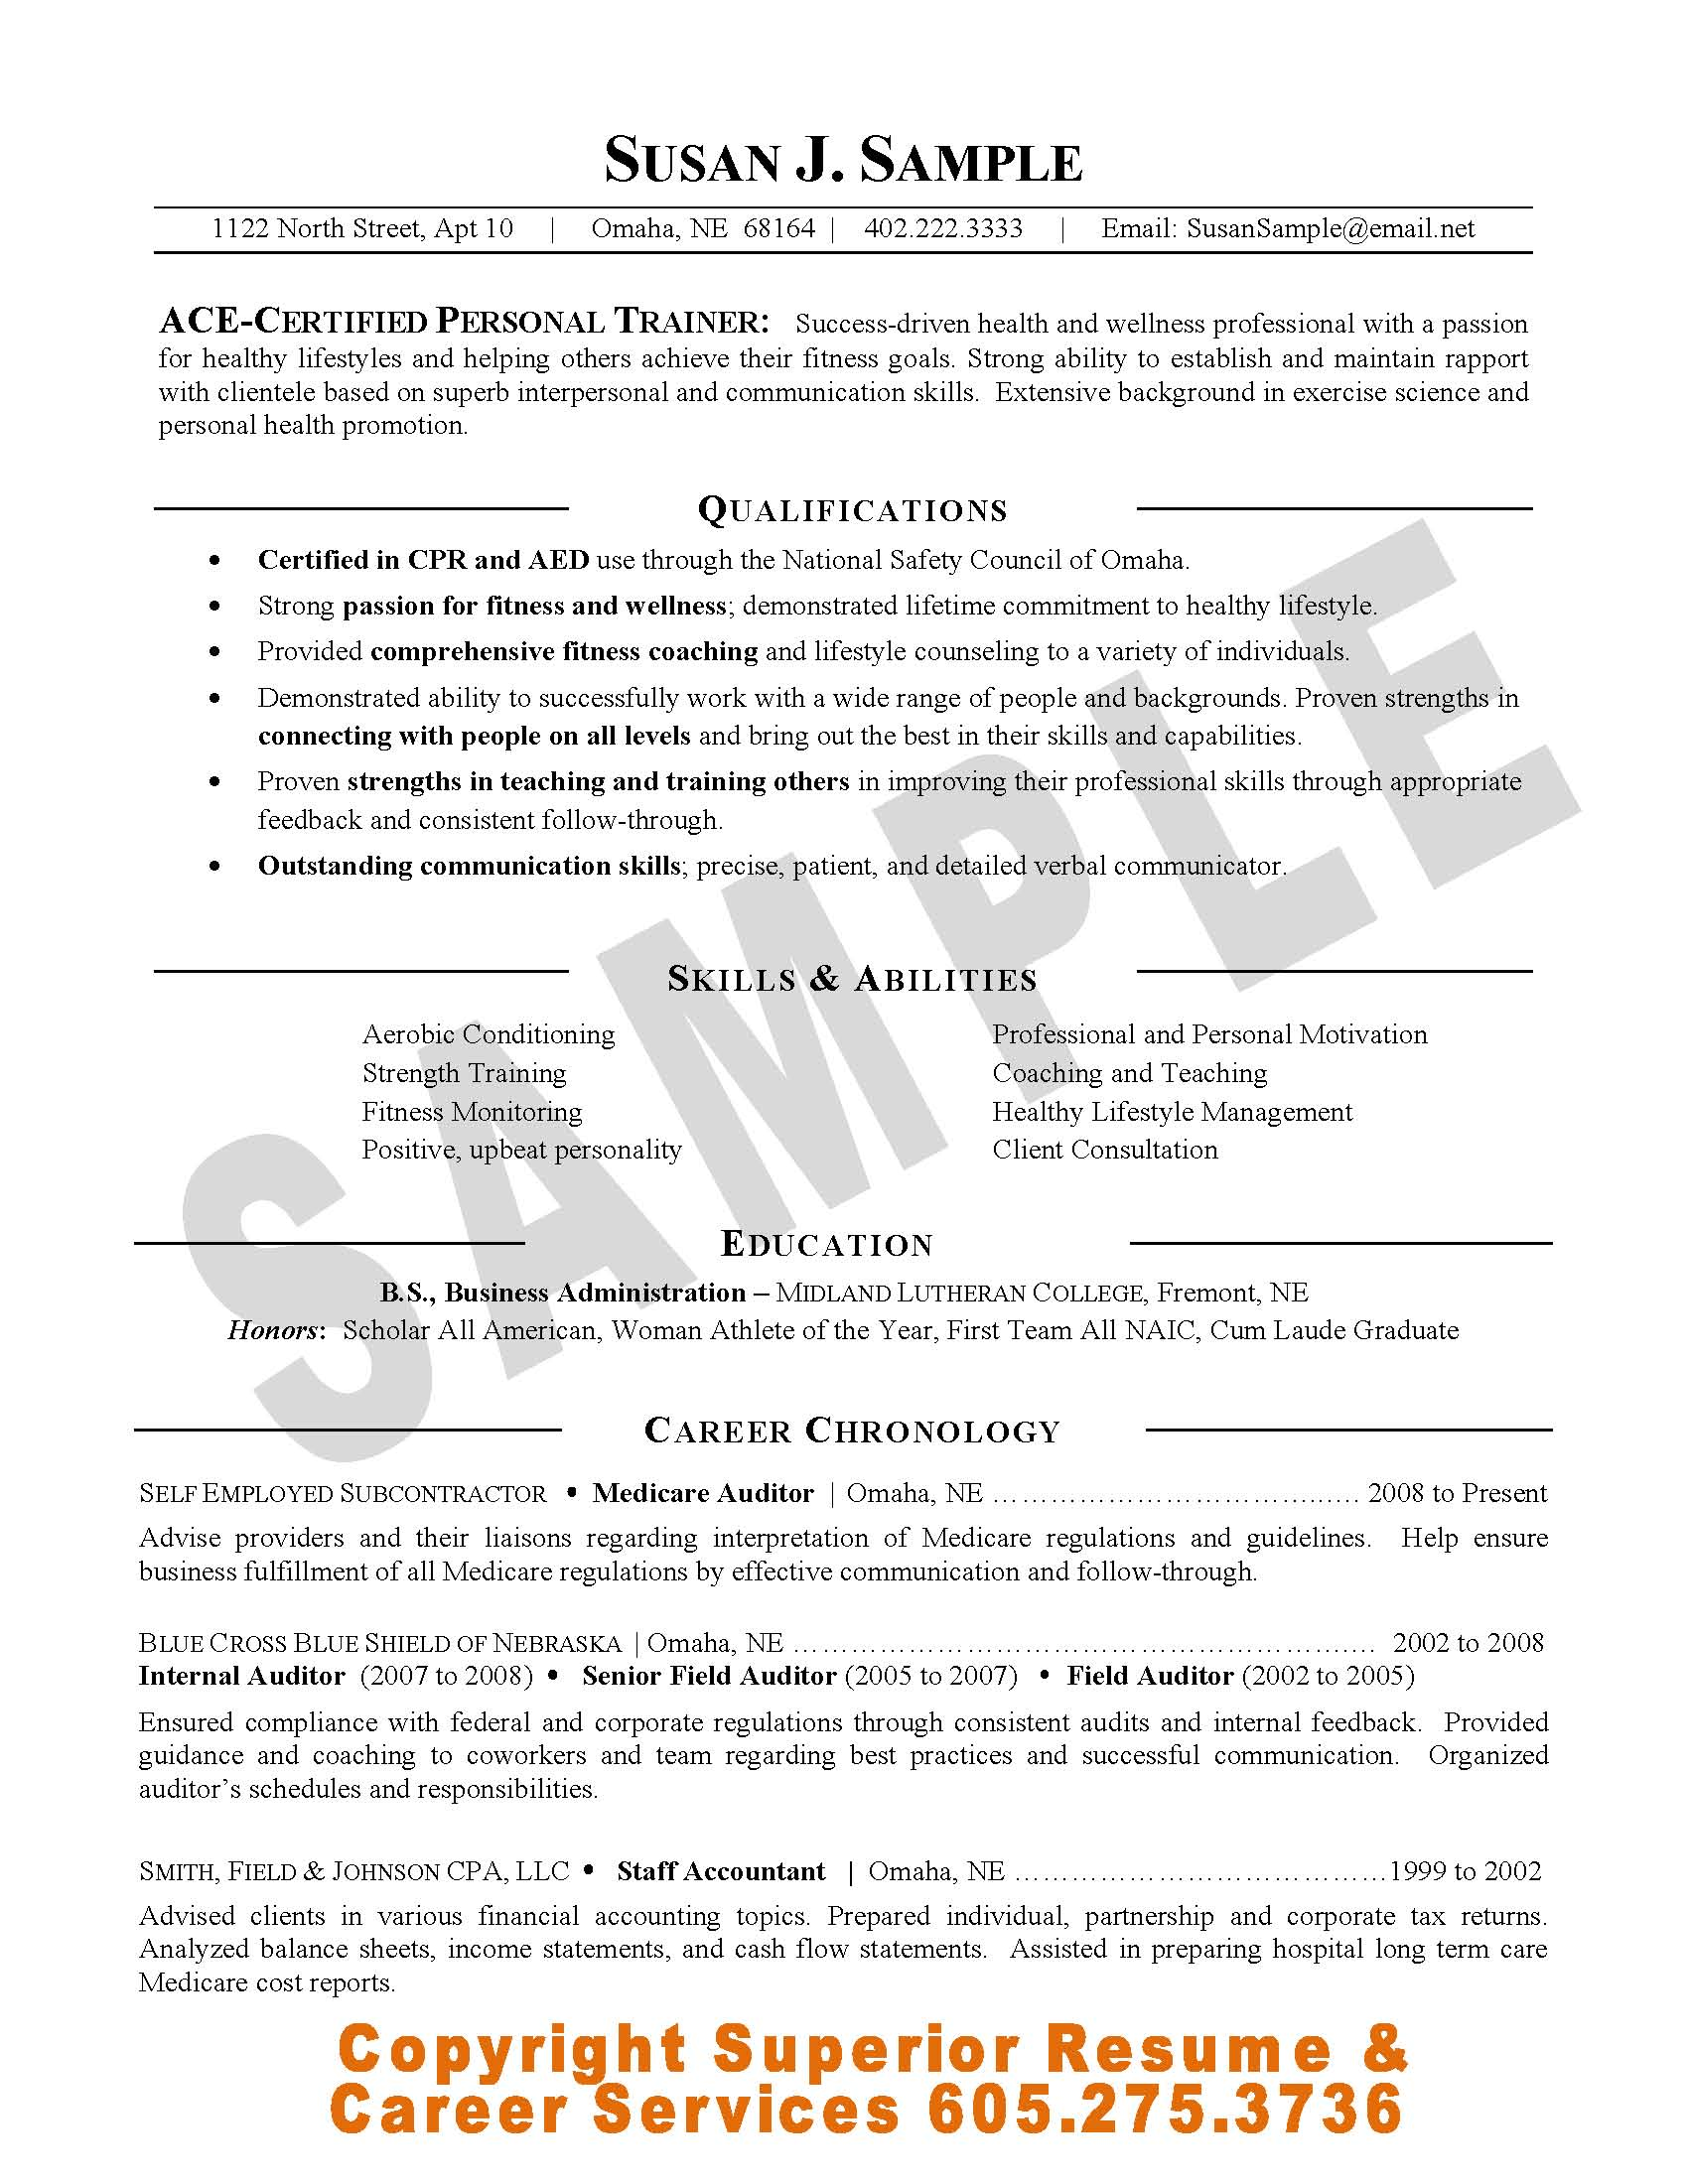 A resume objective states your career goals. Carer Change Resume Objective Examples Better Living Through Resume Sample